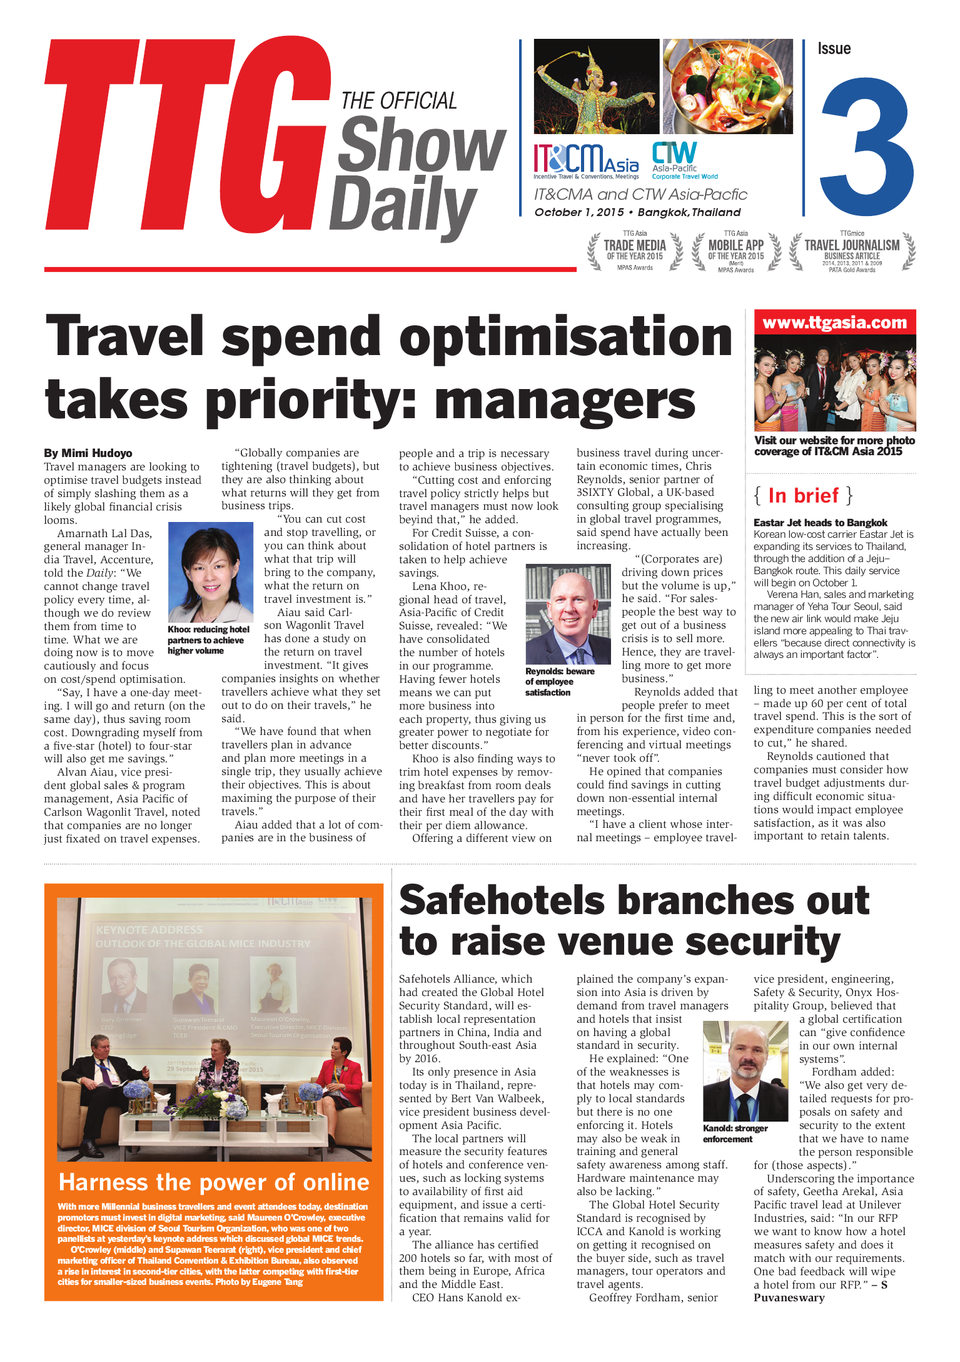 IT&CMA and CTW Asia-Pacific 2015 Day 3 - Digital Edition